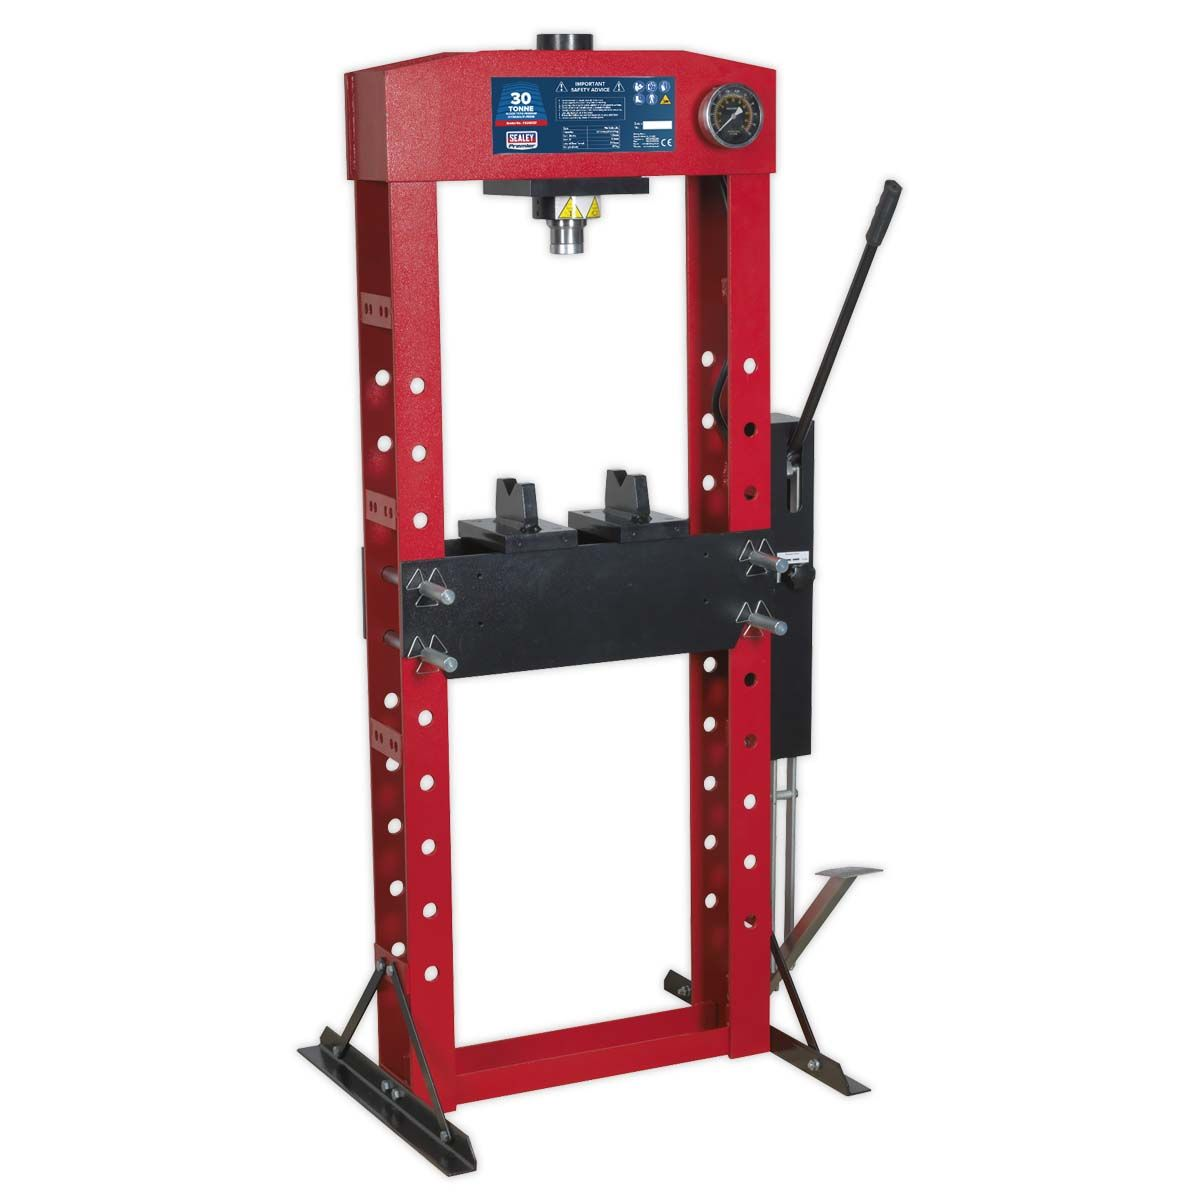 Sealey Hydraulic Press Premier 30tonne Floor Type with Foot Pedal